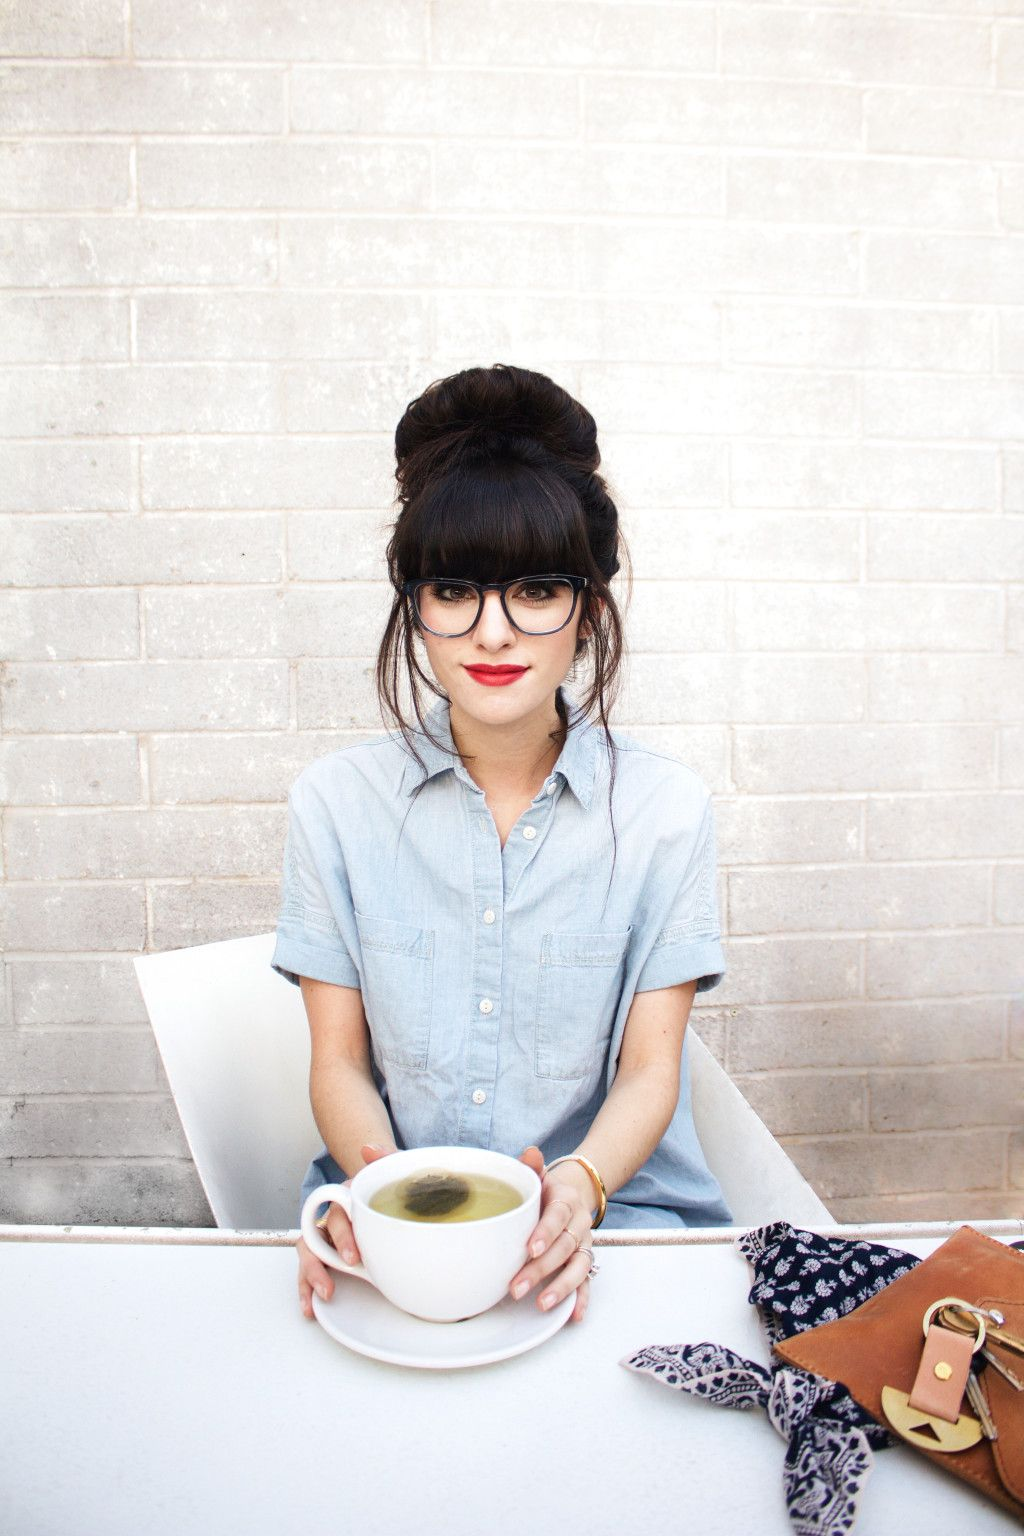 b1e0517b960 New Darlings - Top Knot - Red Lips - Chambray